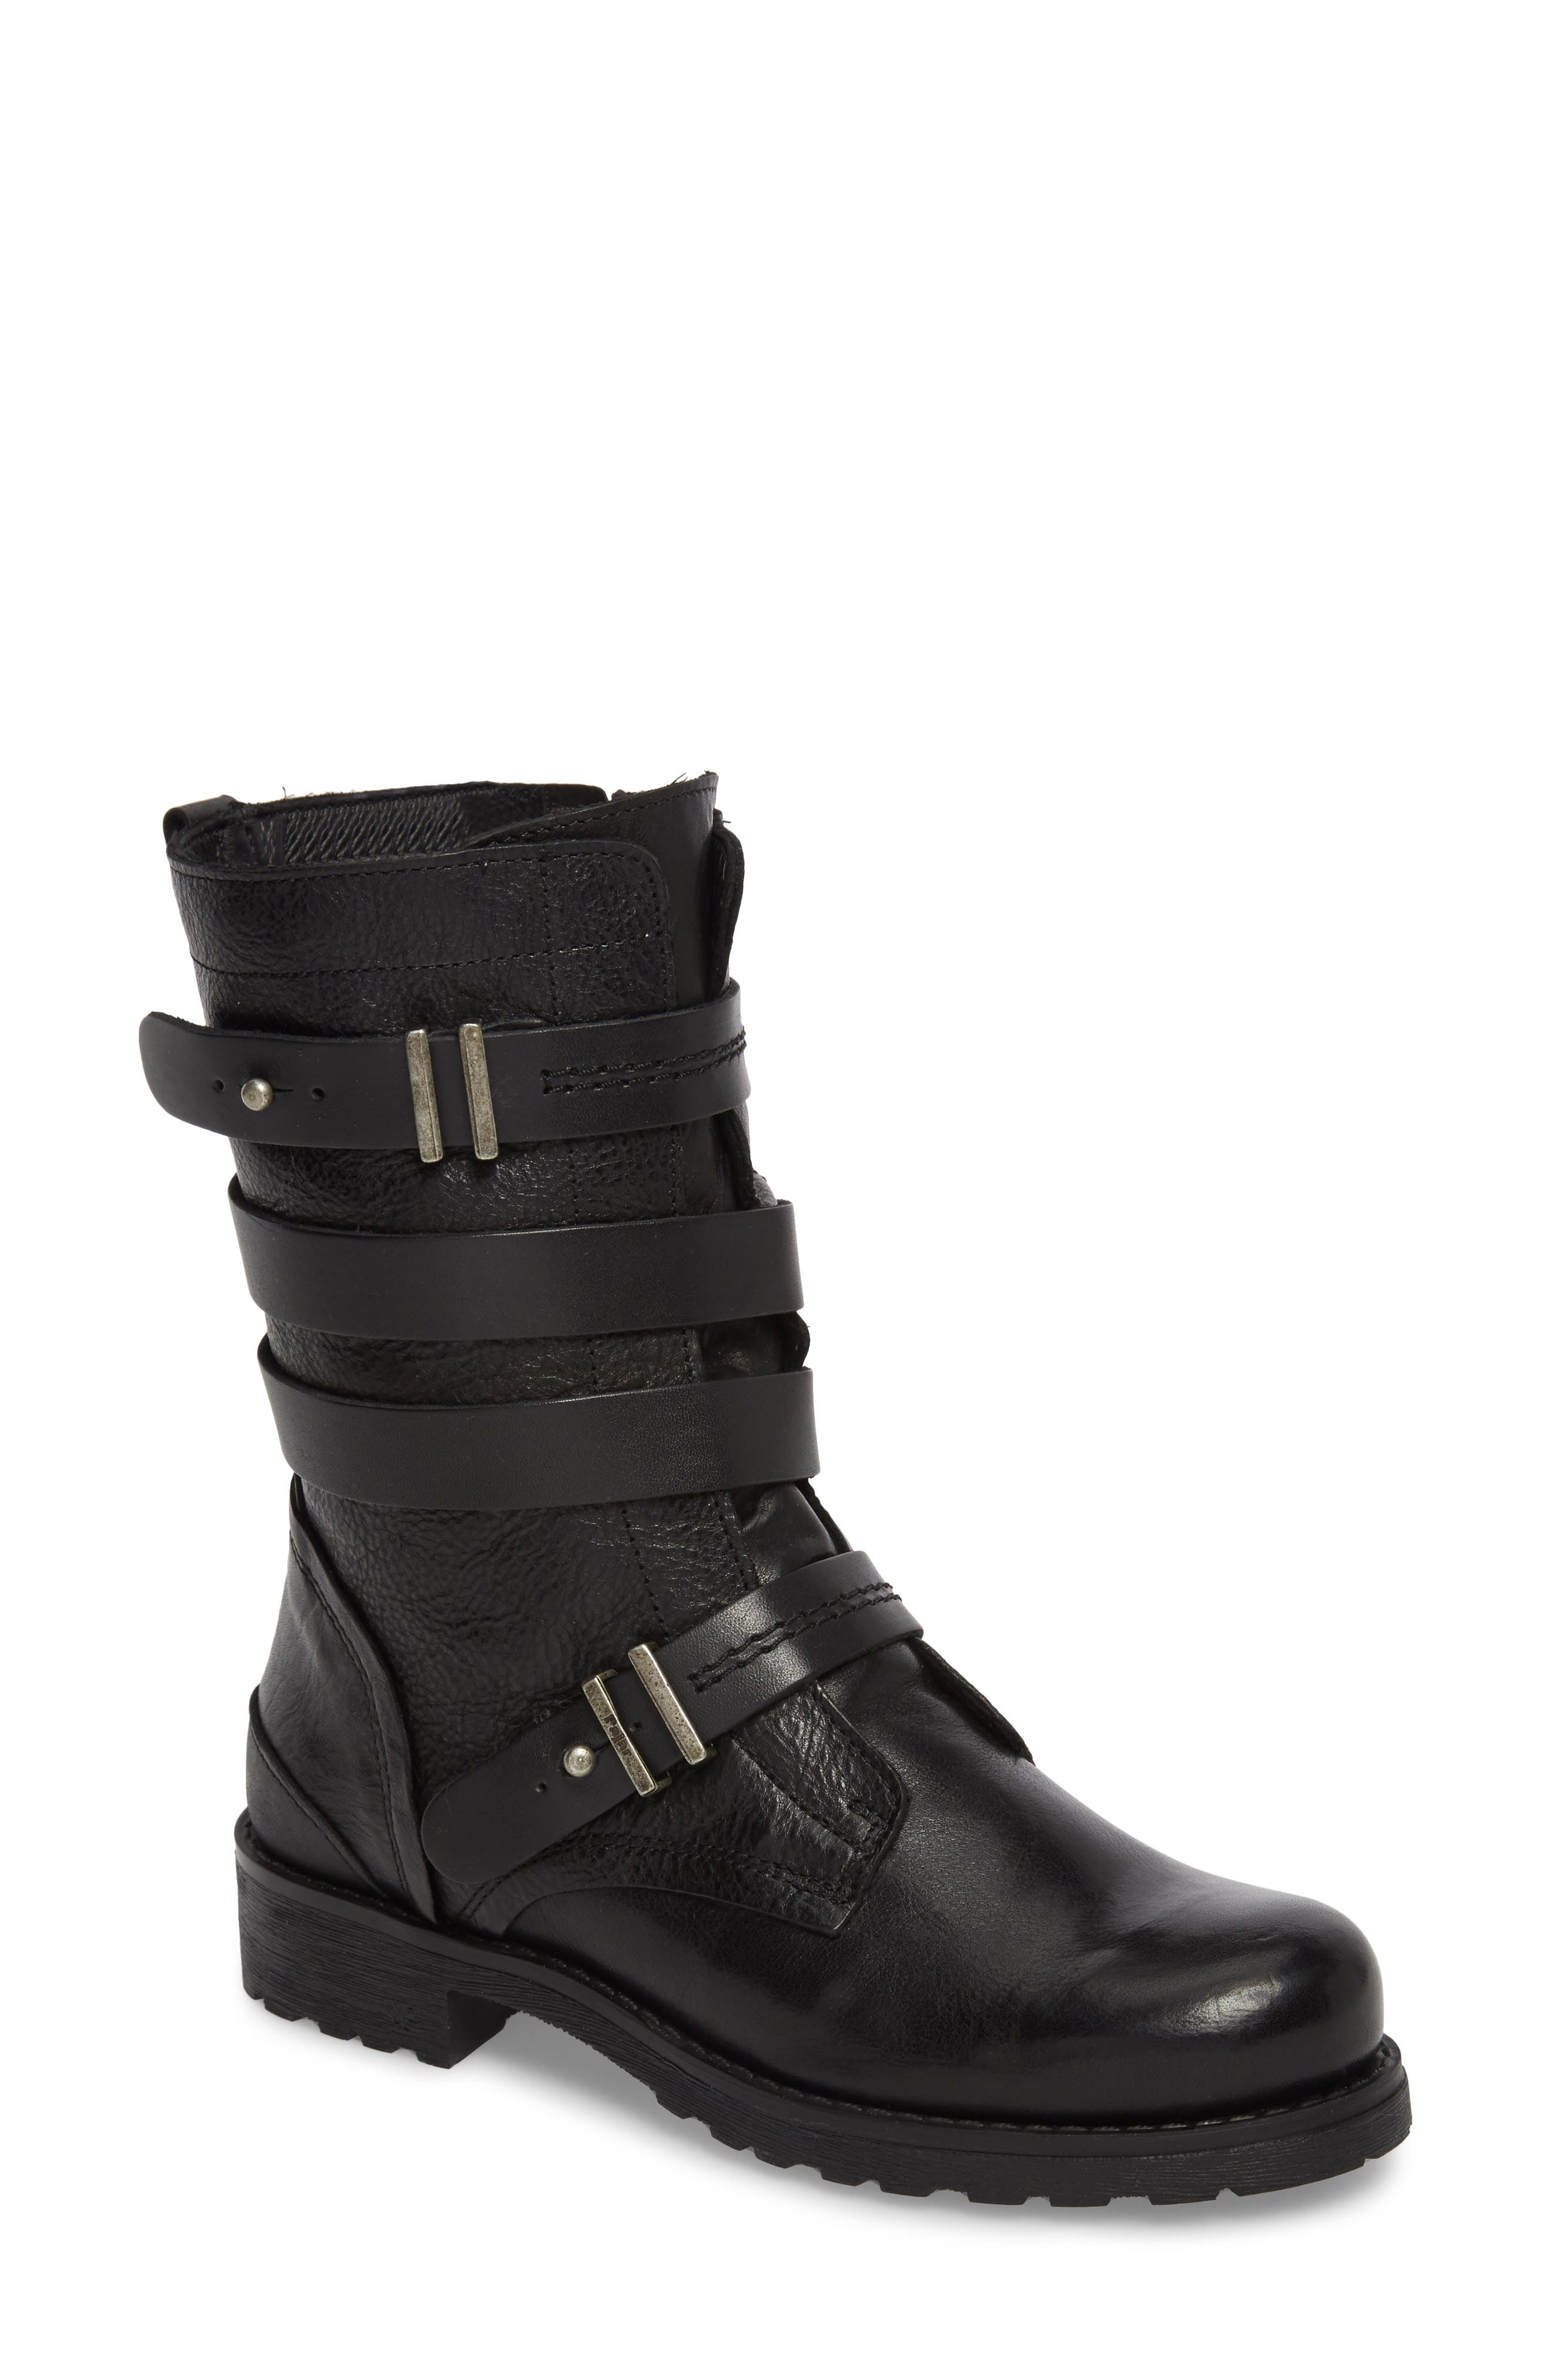 Main Image - Pajar Latias Waterproof Moto Boot (Women)